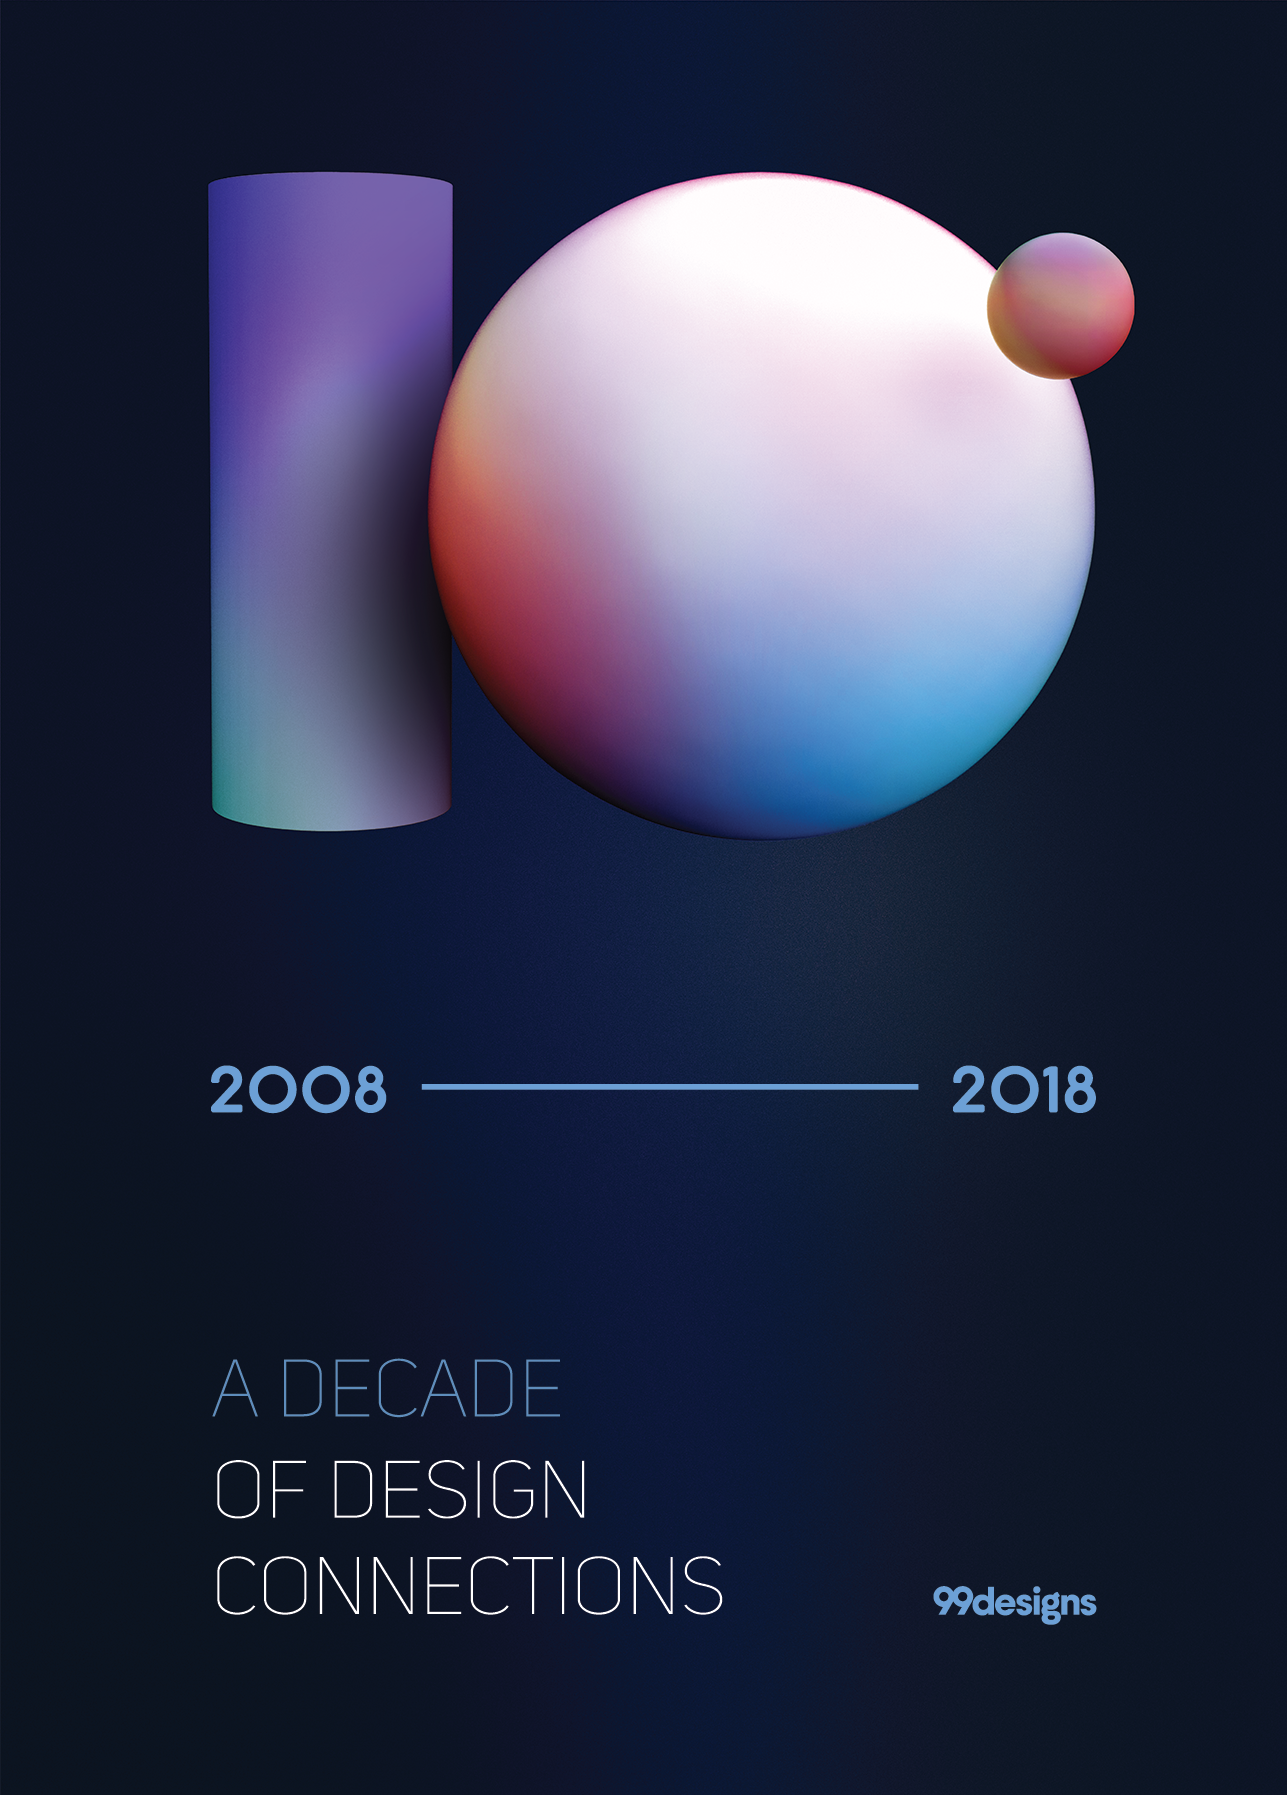 Poster design for 99designs 10 years anniversary